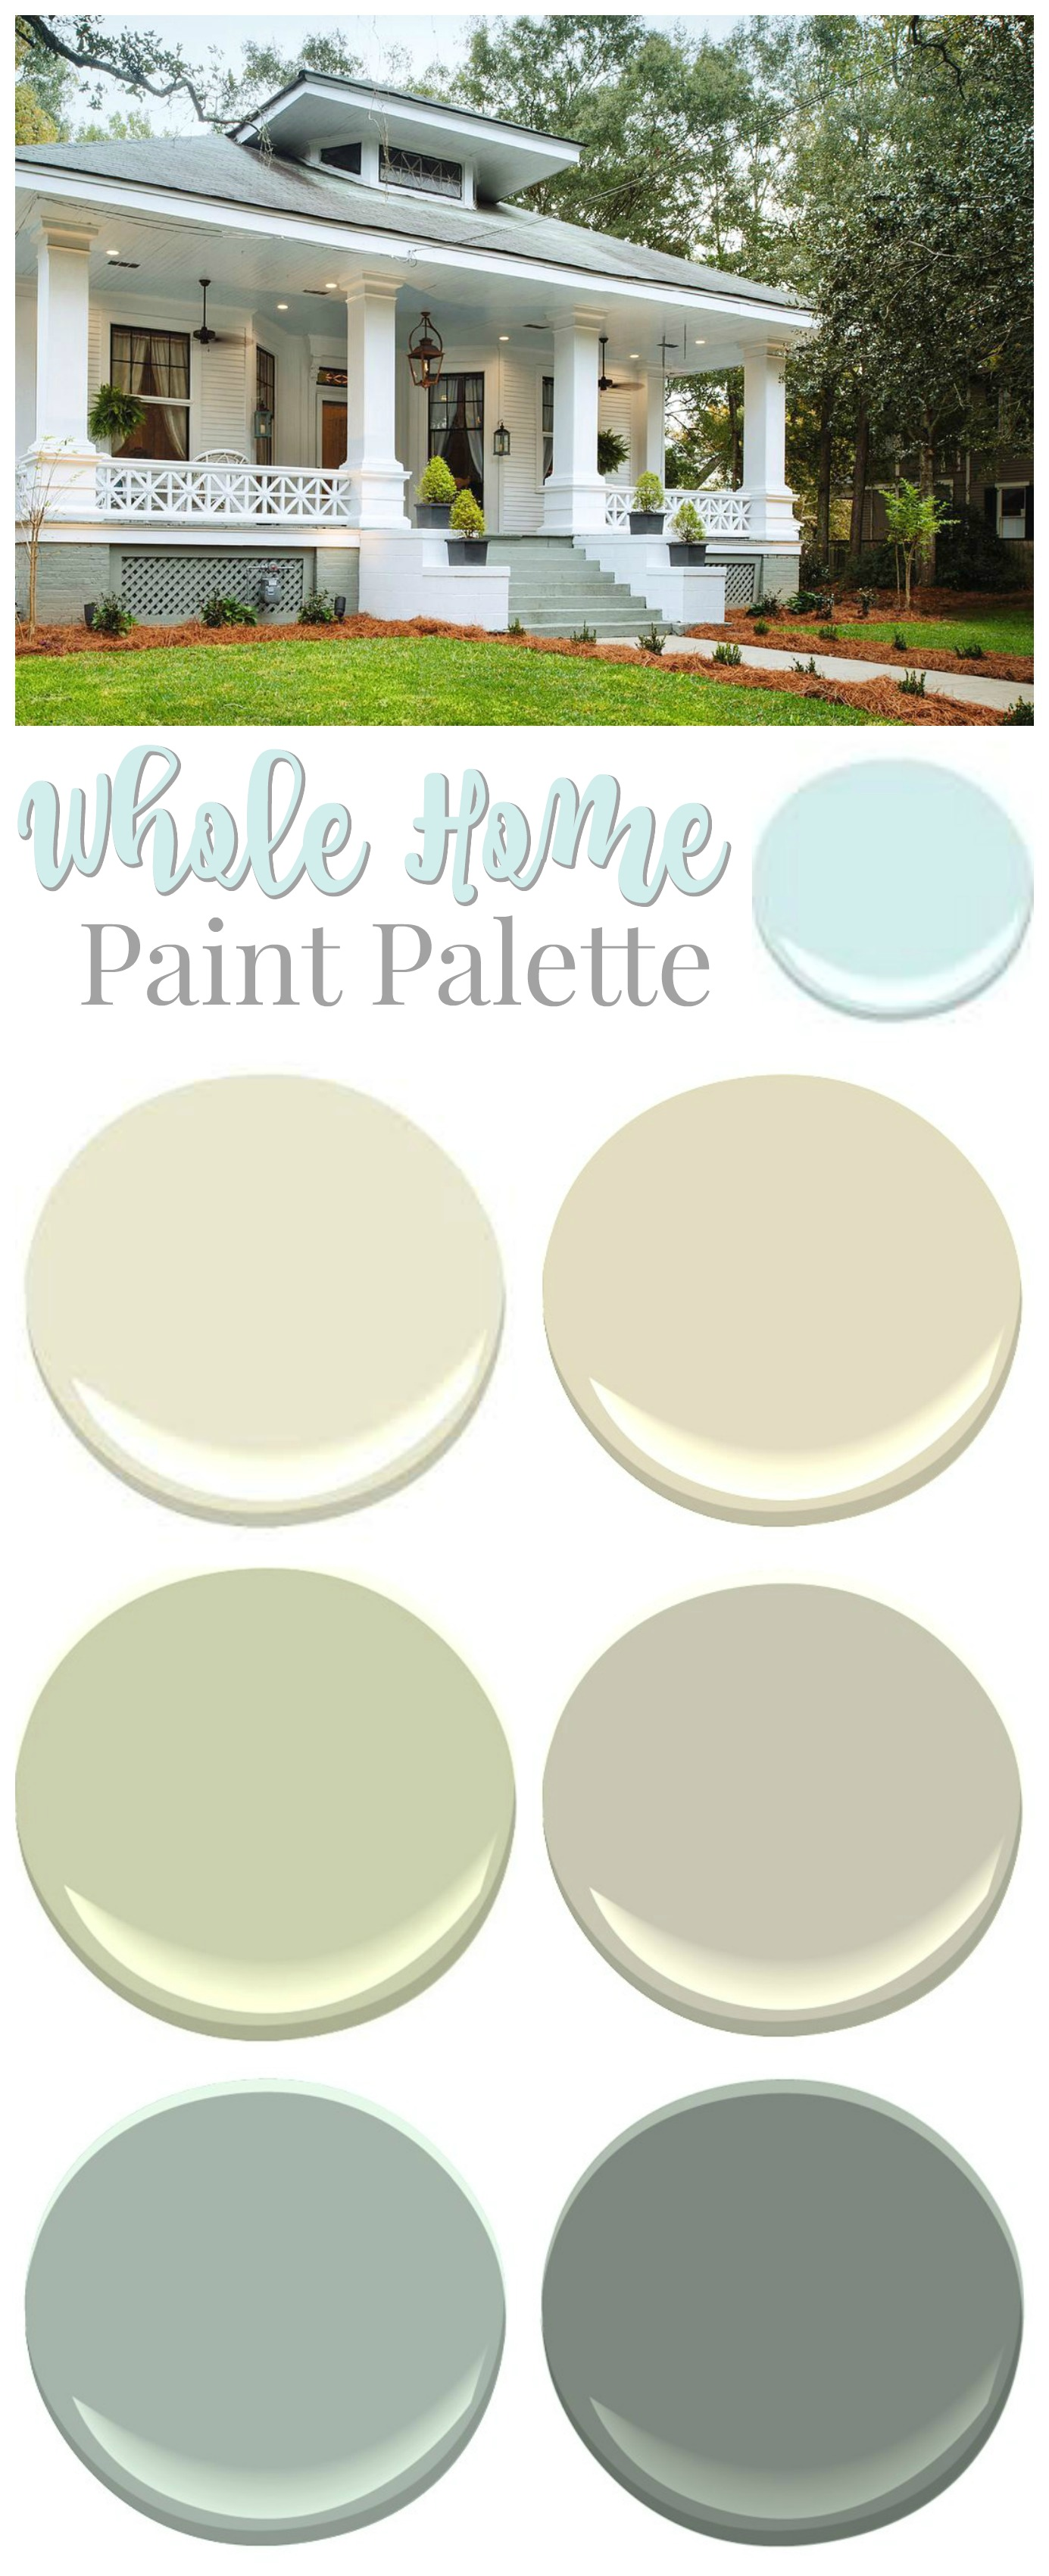 Whole Home Southern Fixer Upper Paint Palette